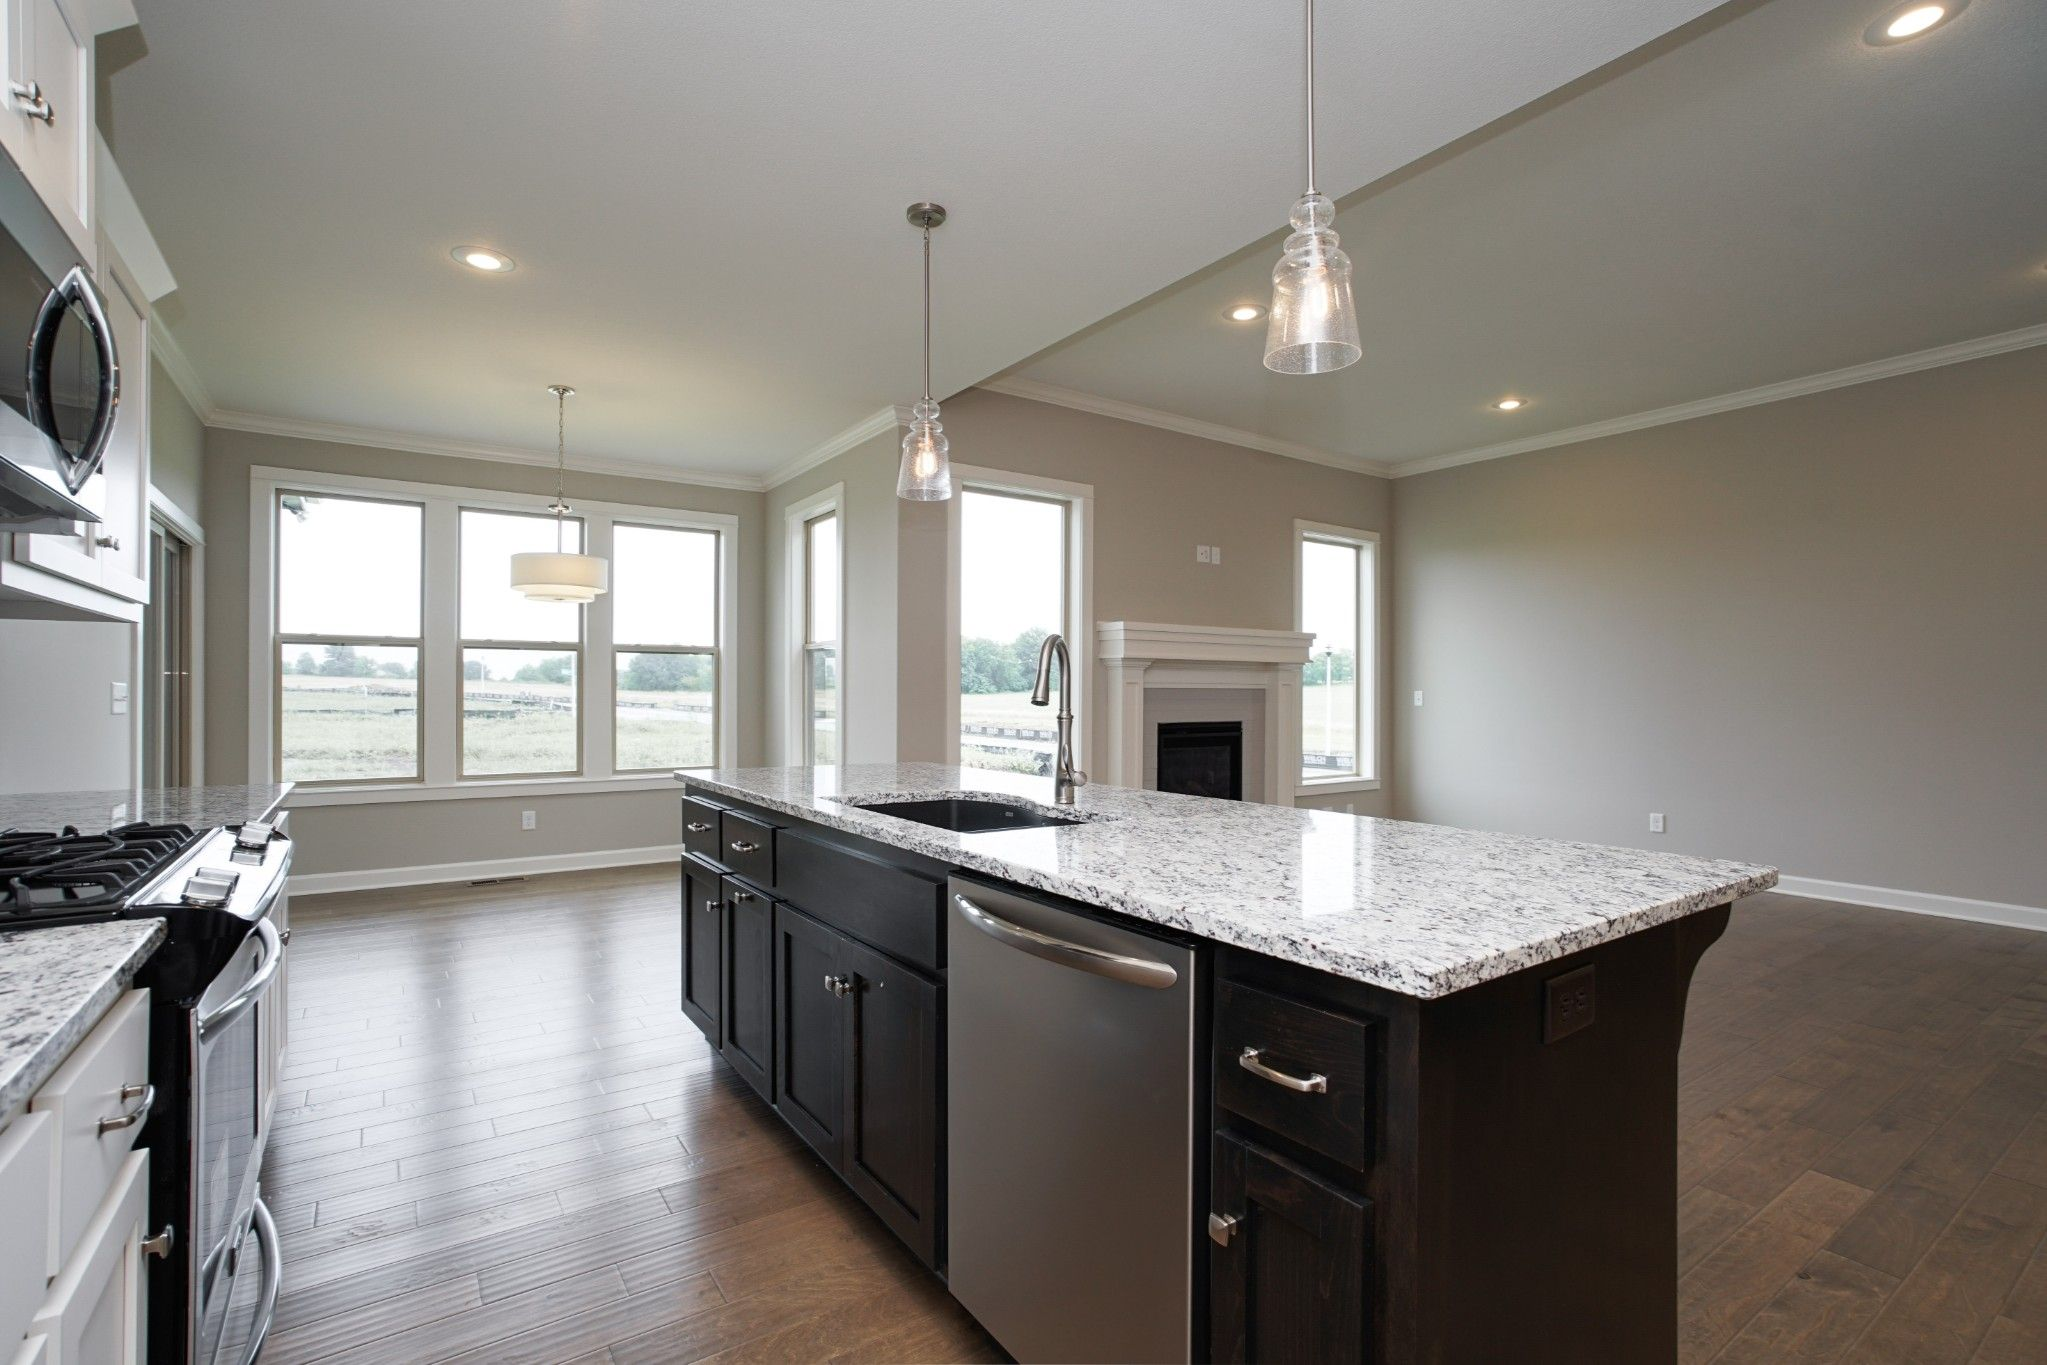 Kitchen featured in the Sheffield By Summit Homes in Kansas City, MO